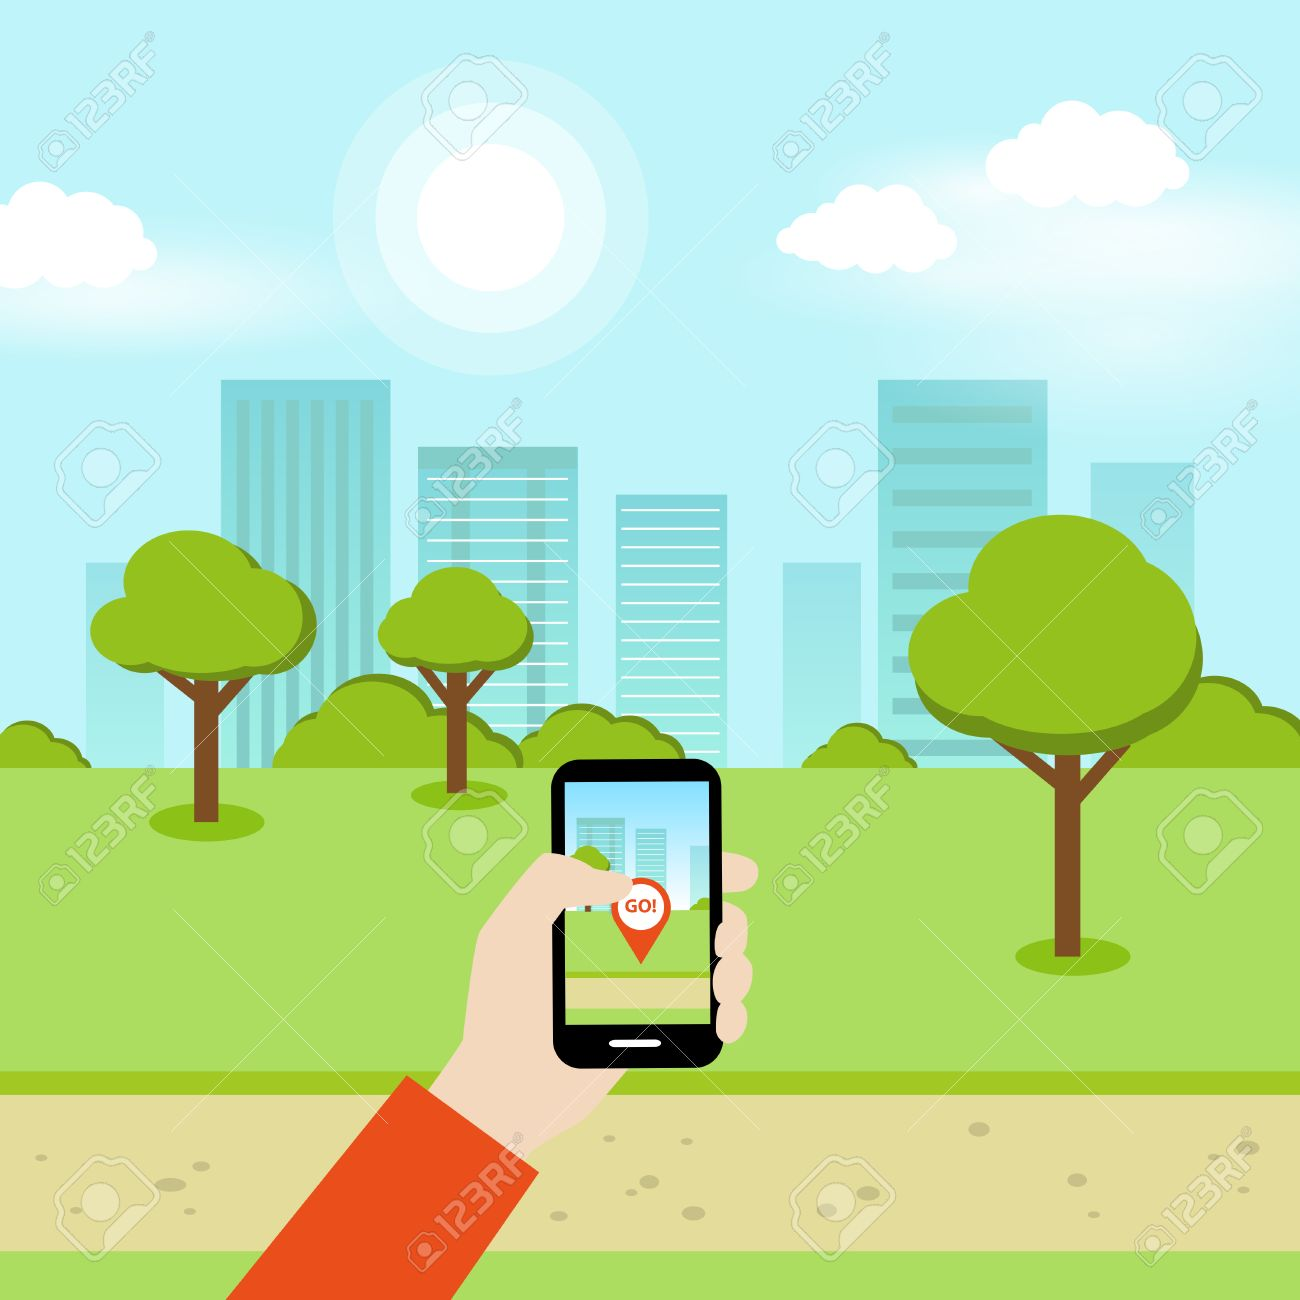 A person using a smartphone to play an online geolocation game in the park. - 60672724